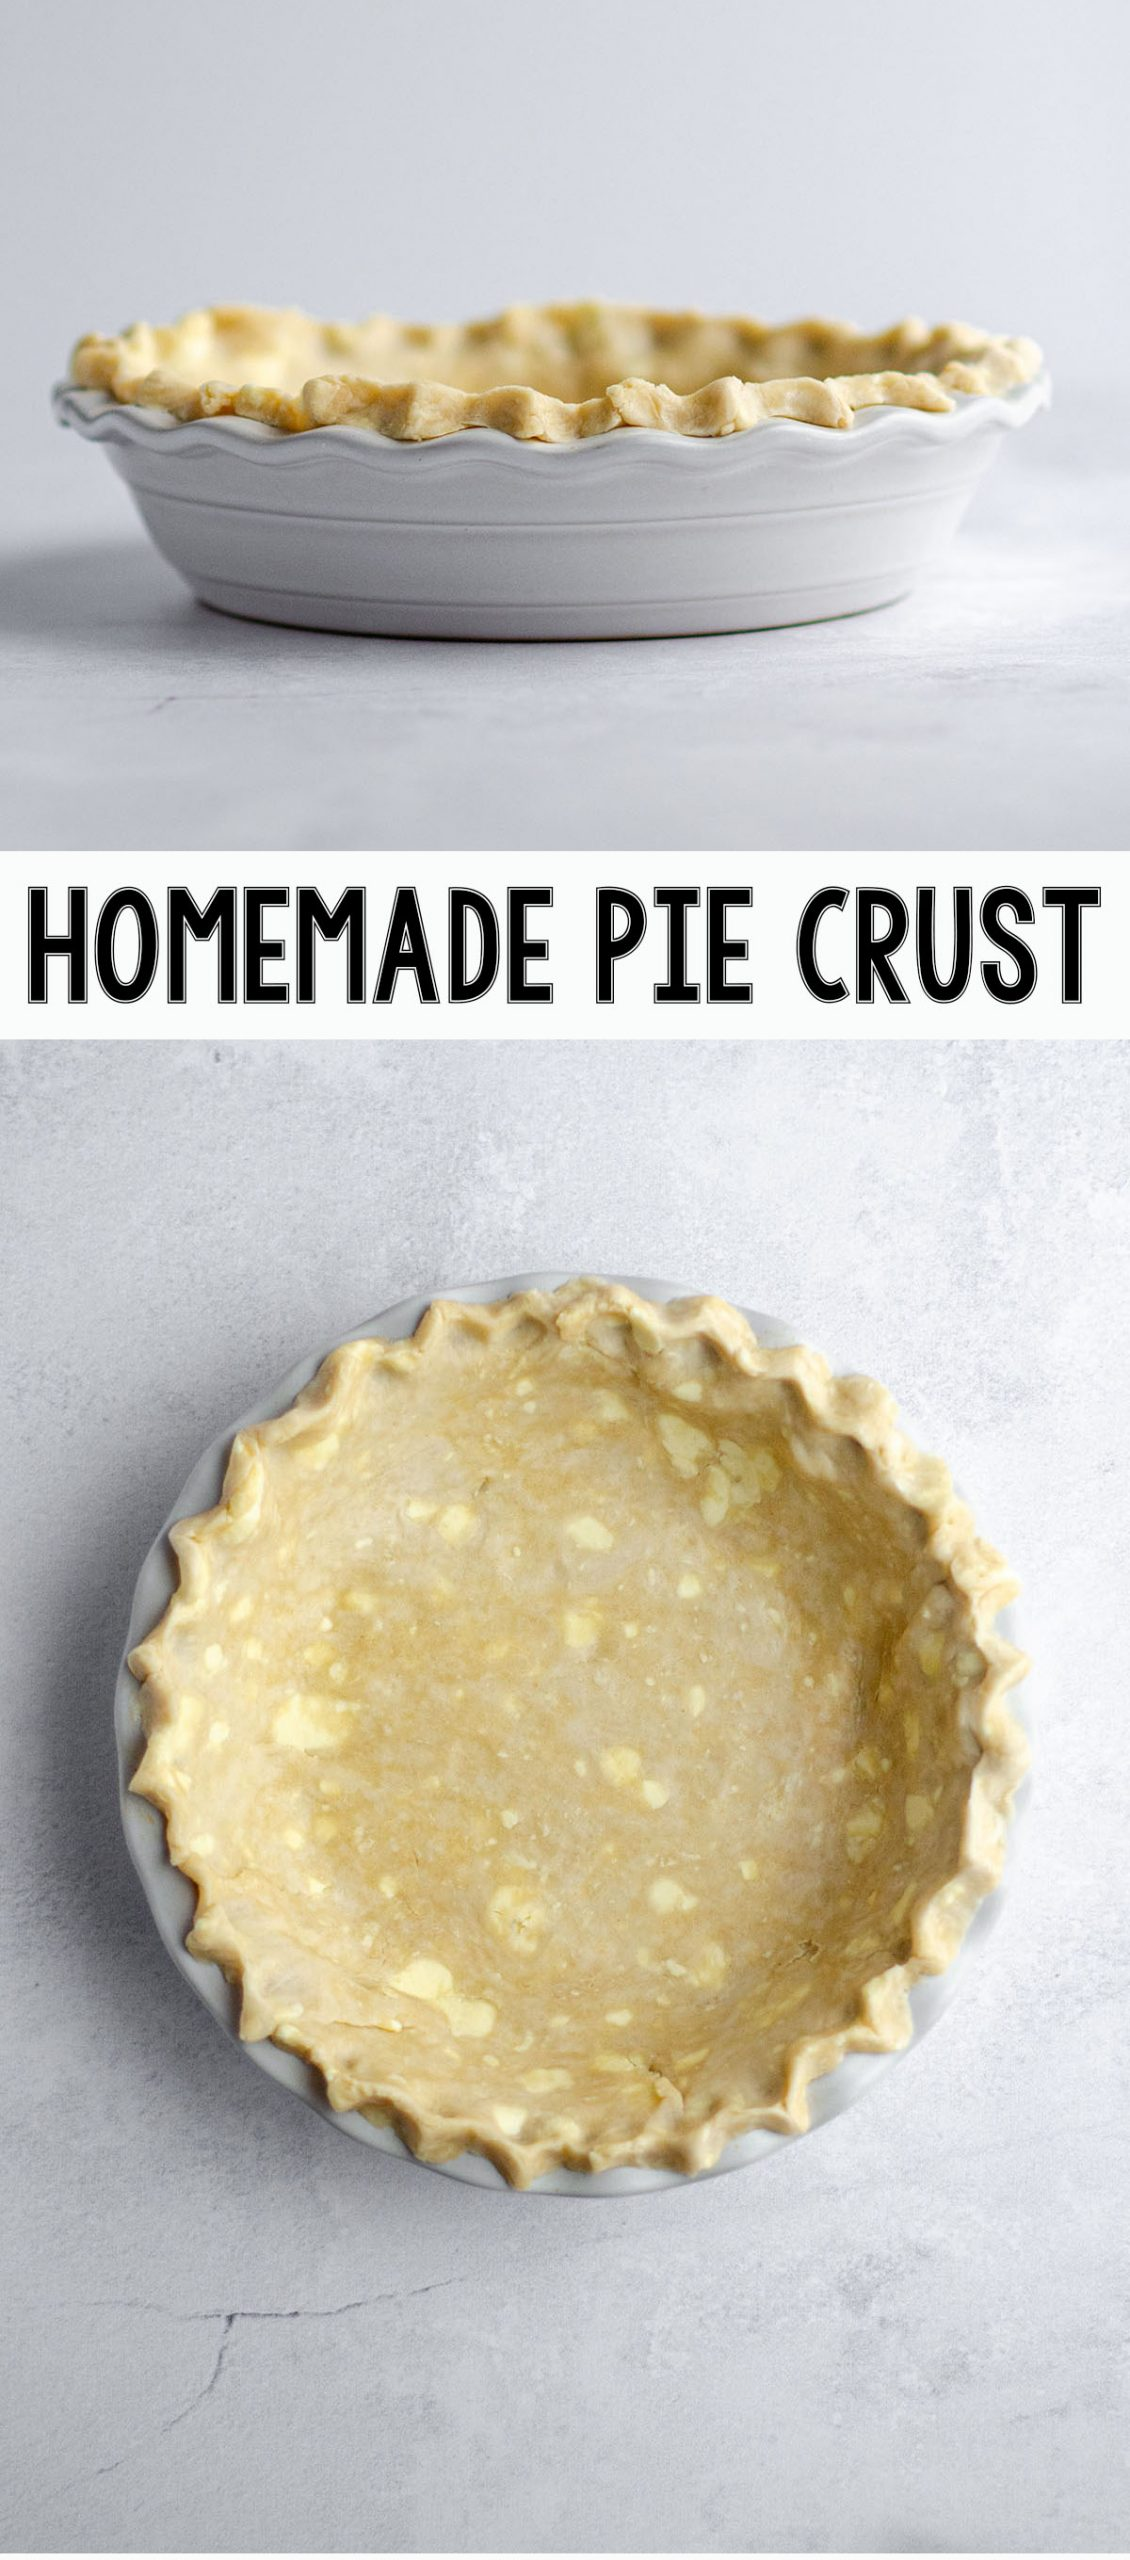 Learn how to make your own buttery, flaky, perfect pie crust at home. This recipe makes a double pie crust.